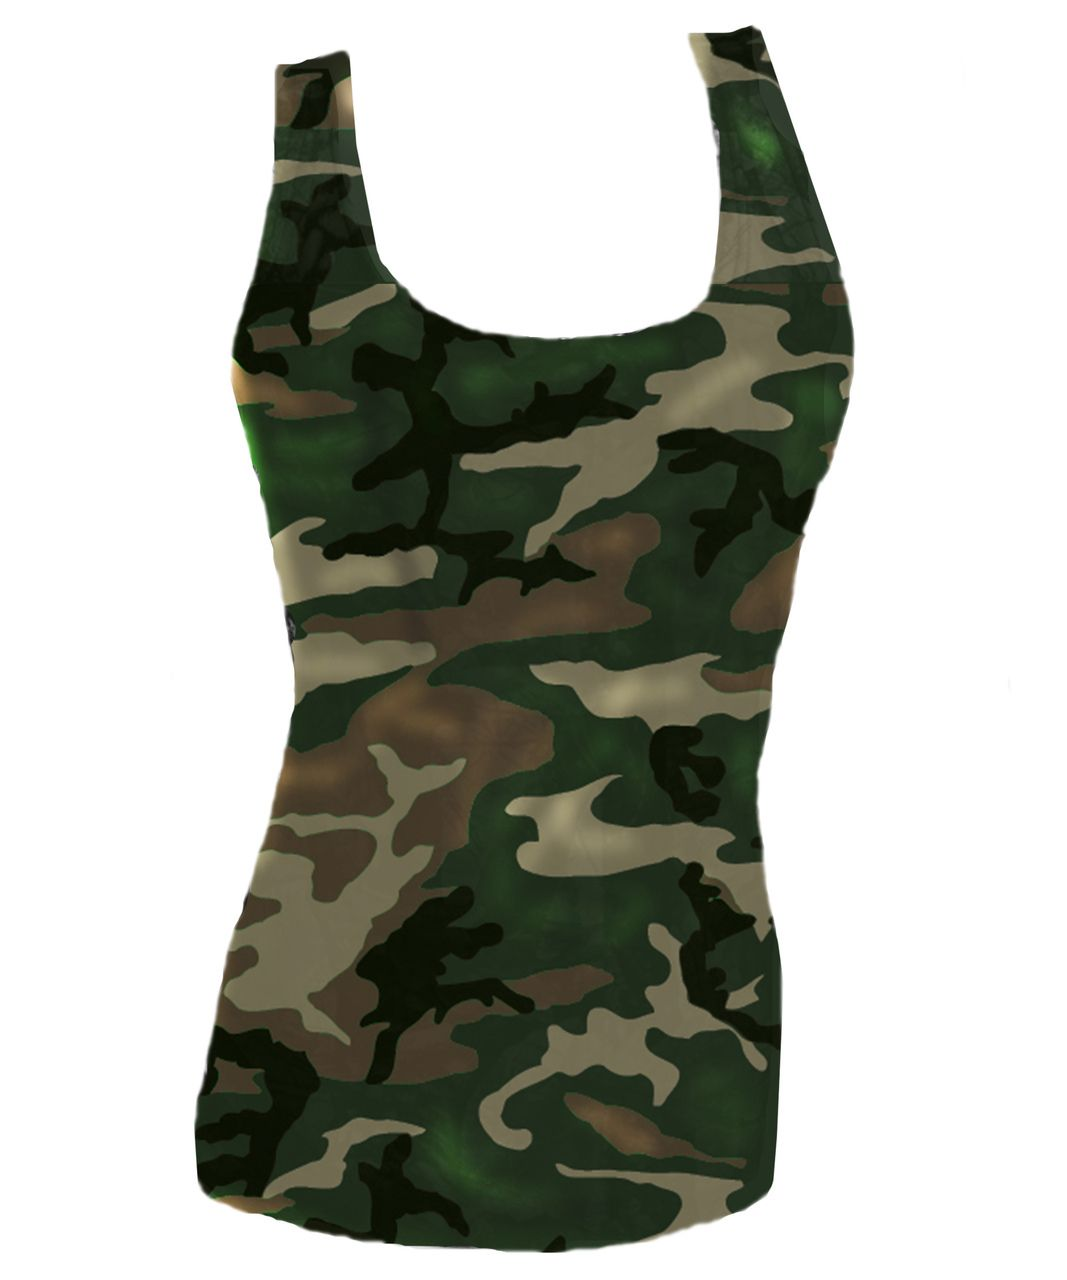 af91dd3c212ec Army Fitted Camo Tank Top For Women | Favorite Camouflage Tank Tops ...